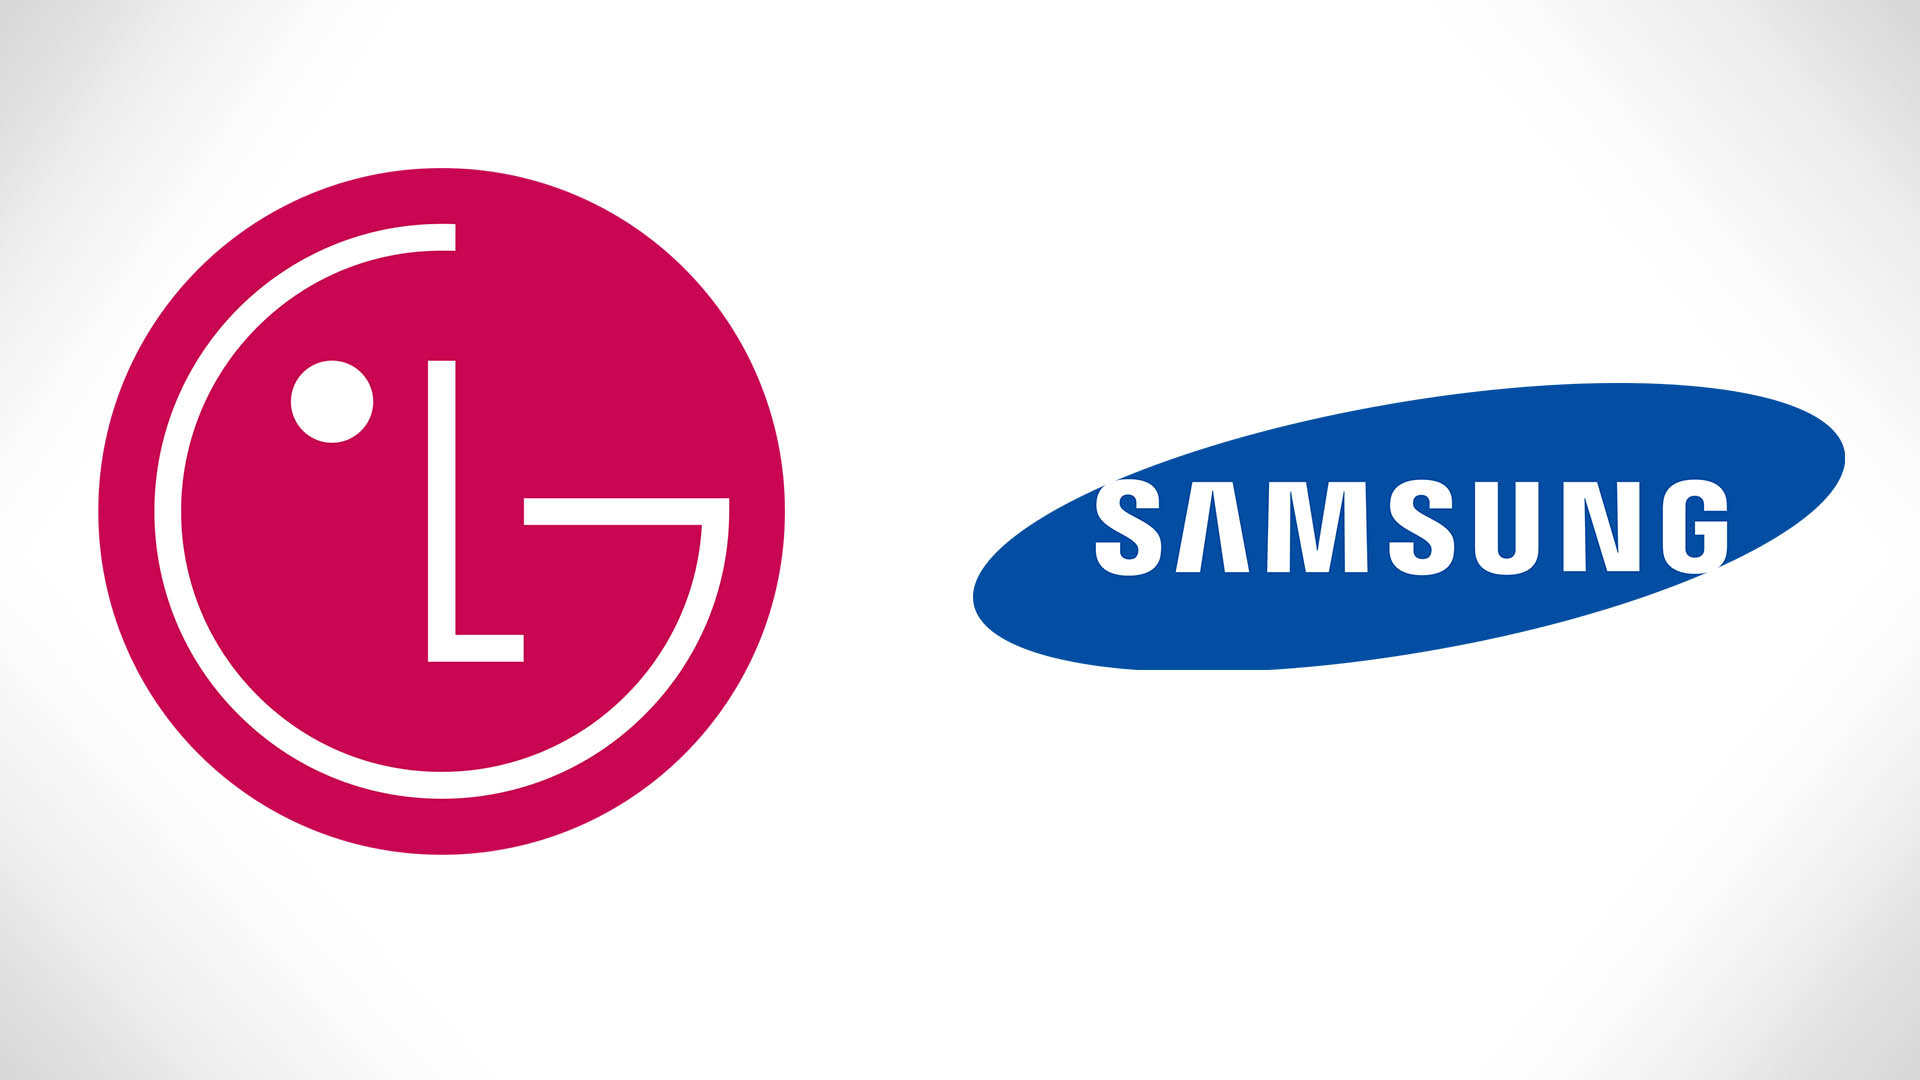 LG and Samsung Both Estimate Record-Breaking Profit Runs for the